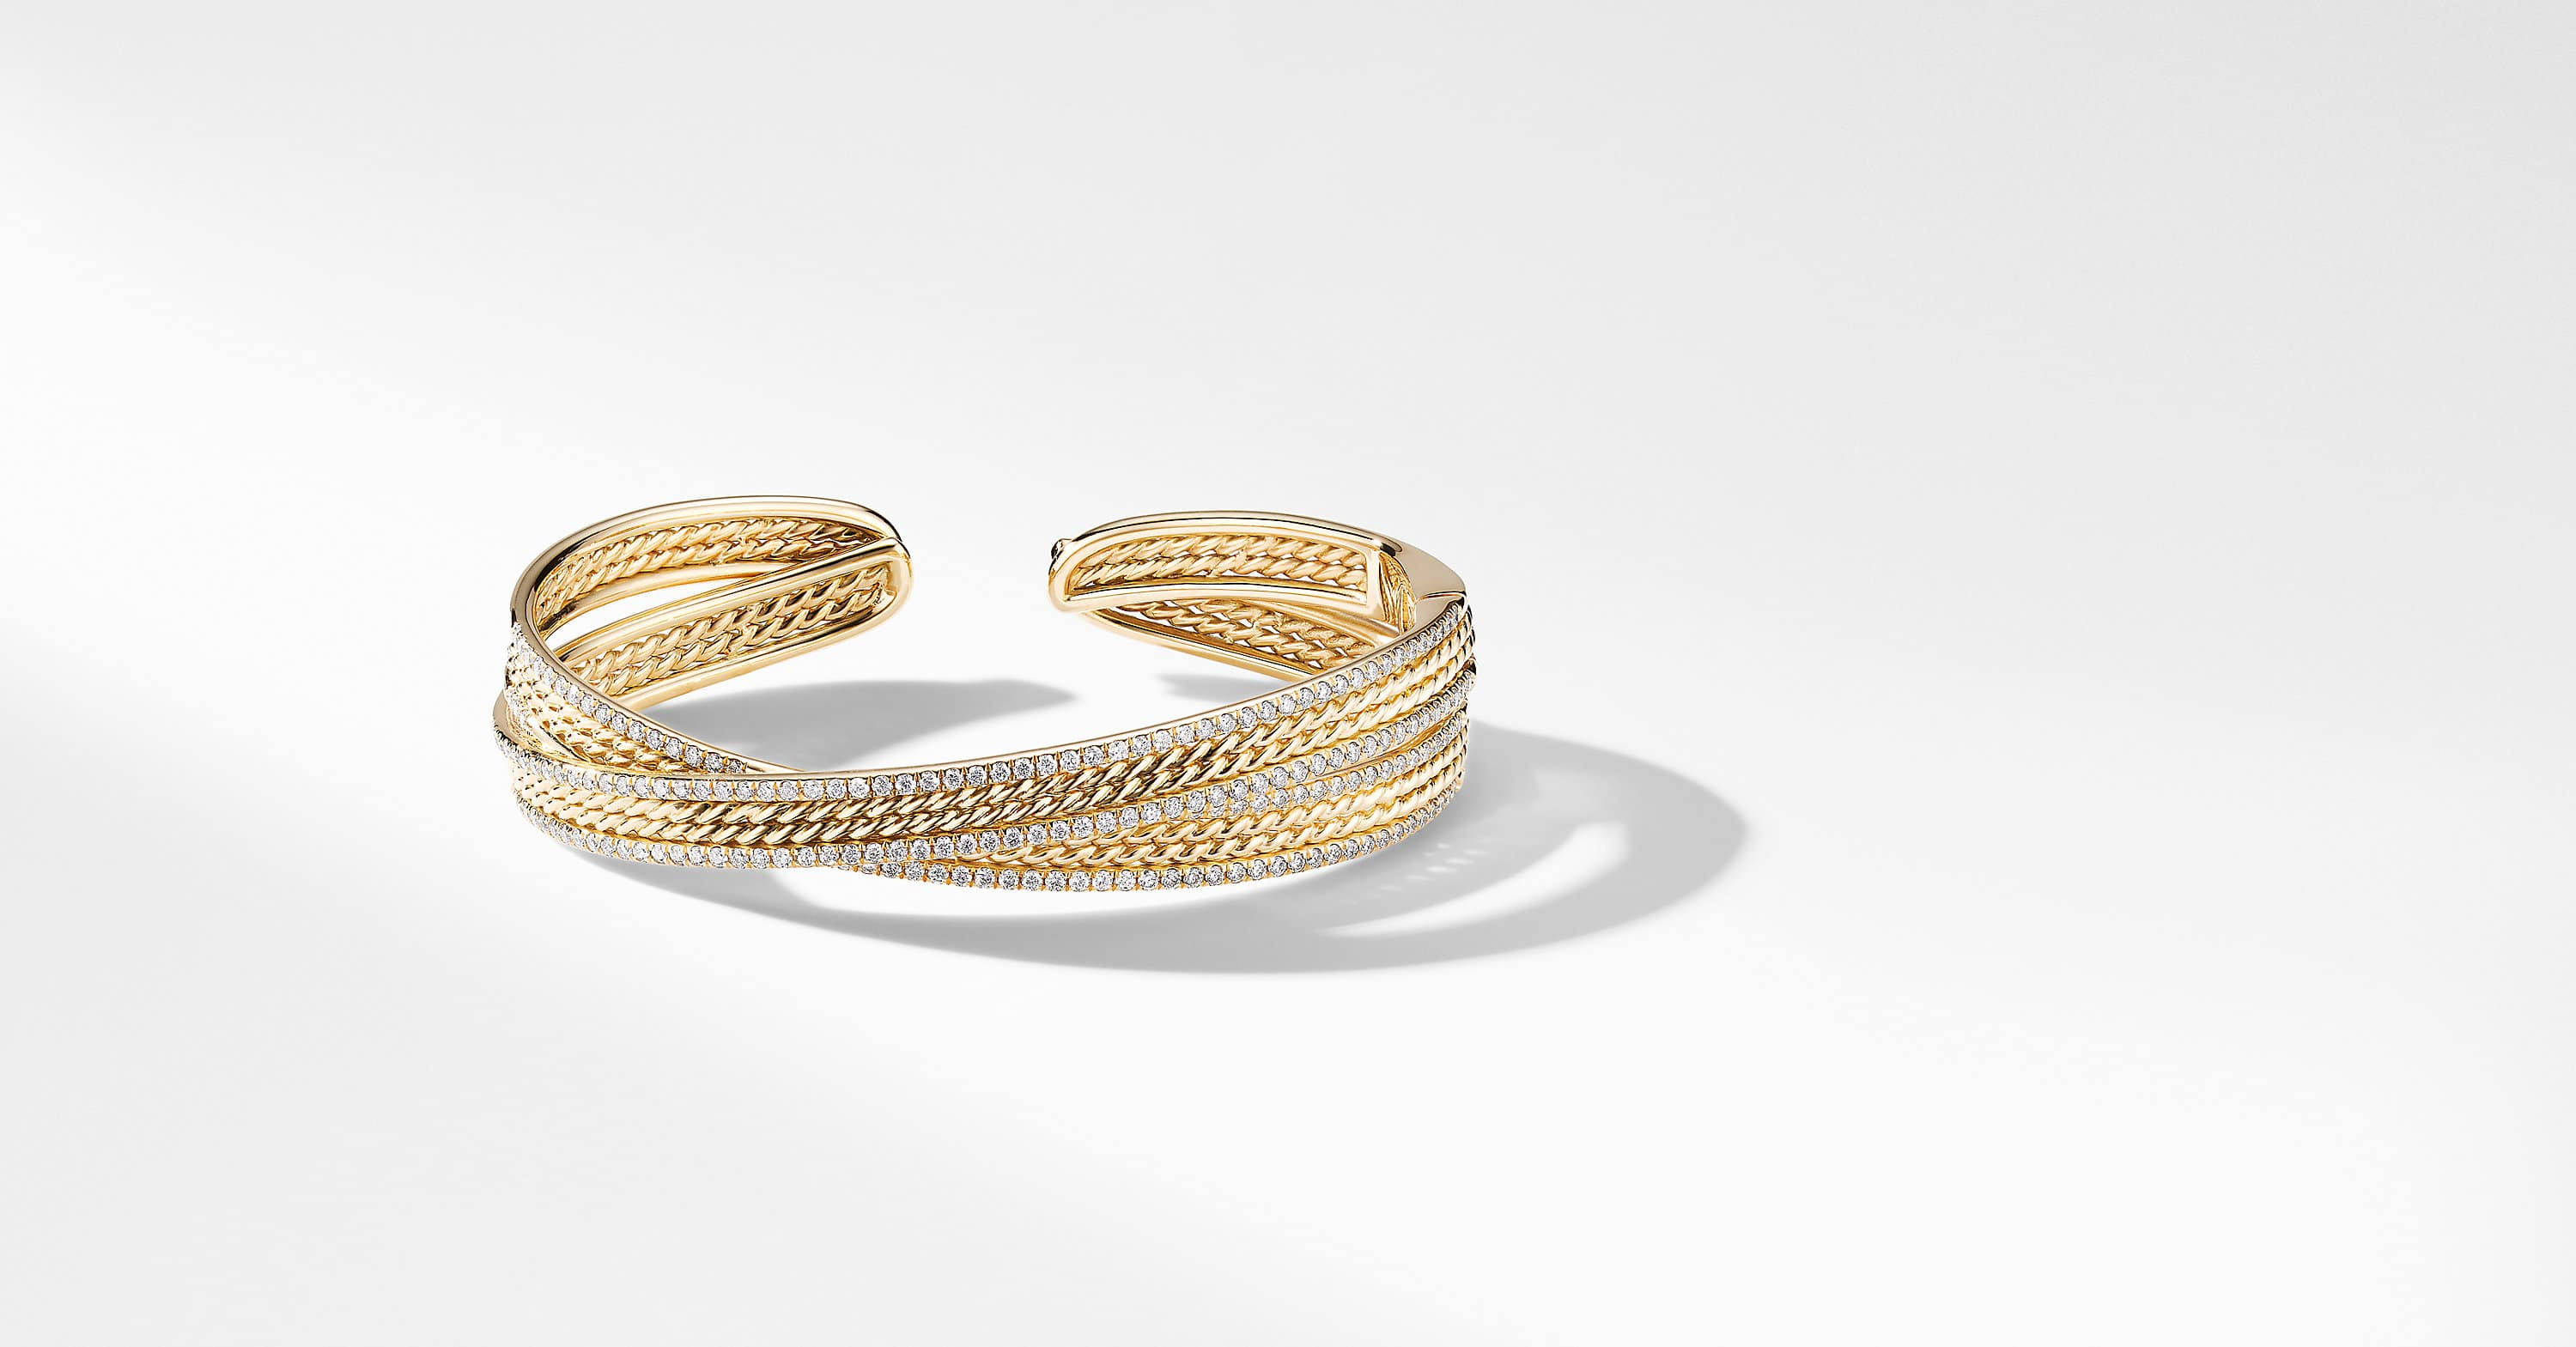 DY Origami Cuff Bracelet in 18K Yellow Gold with Pavé Rails, 14mm